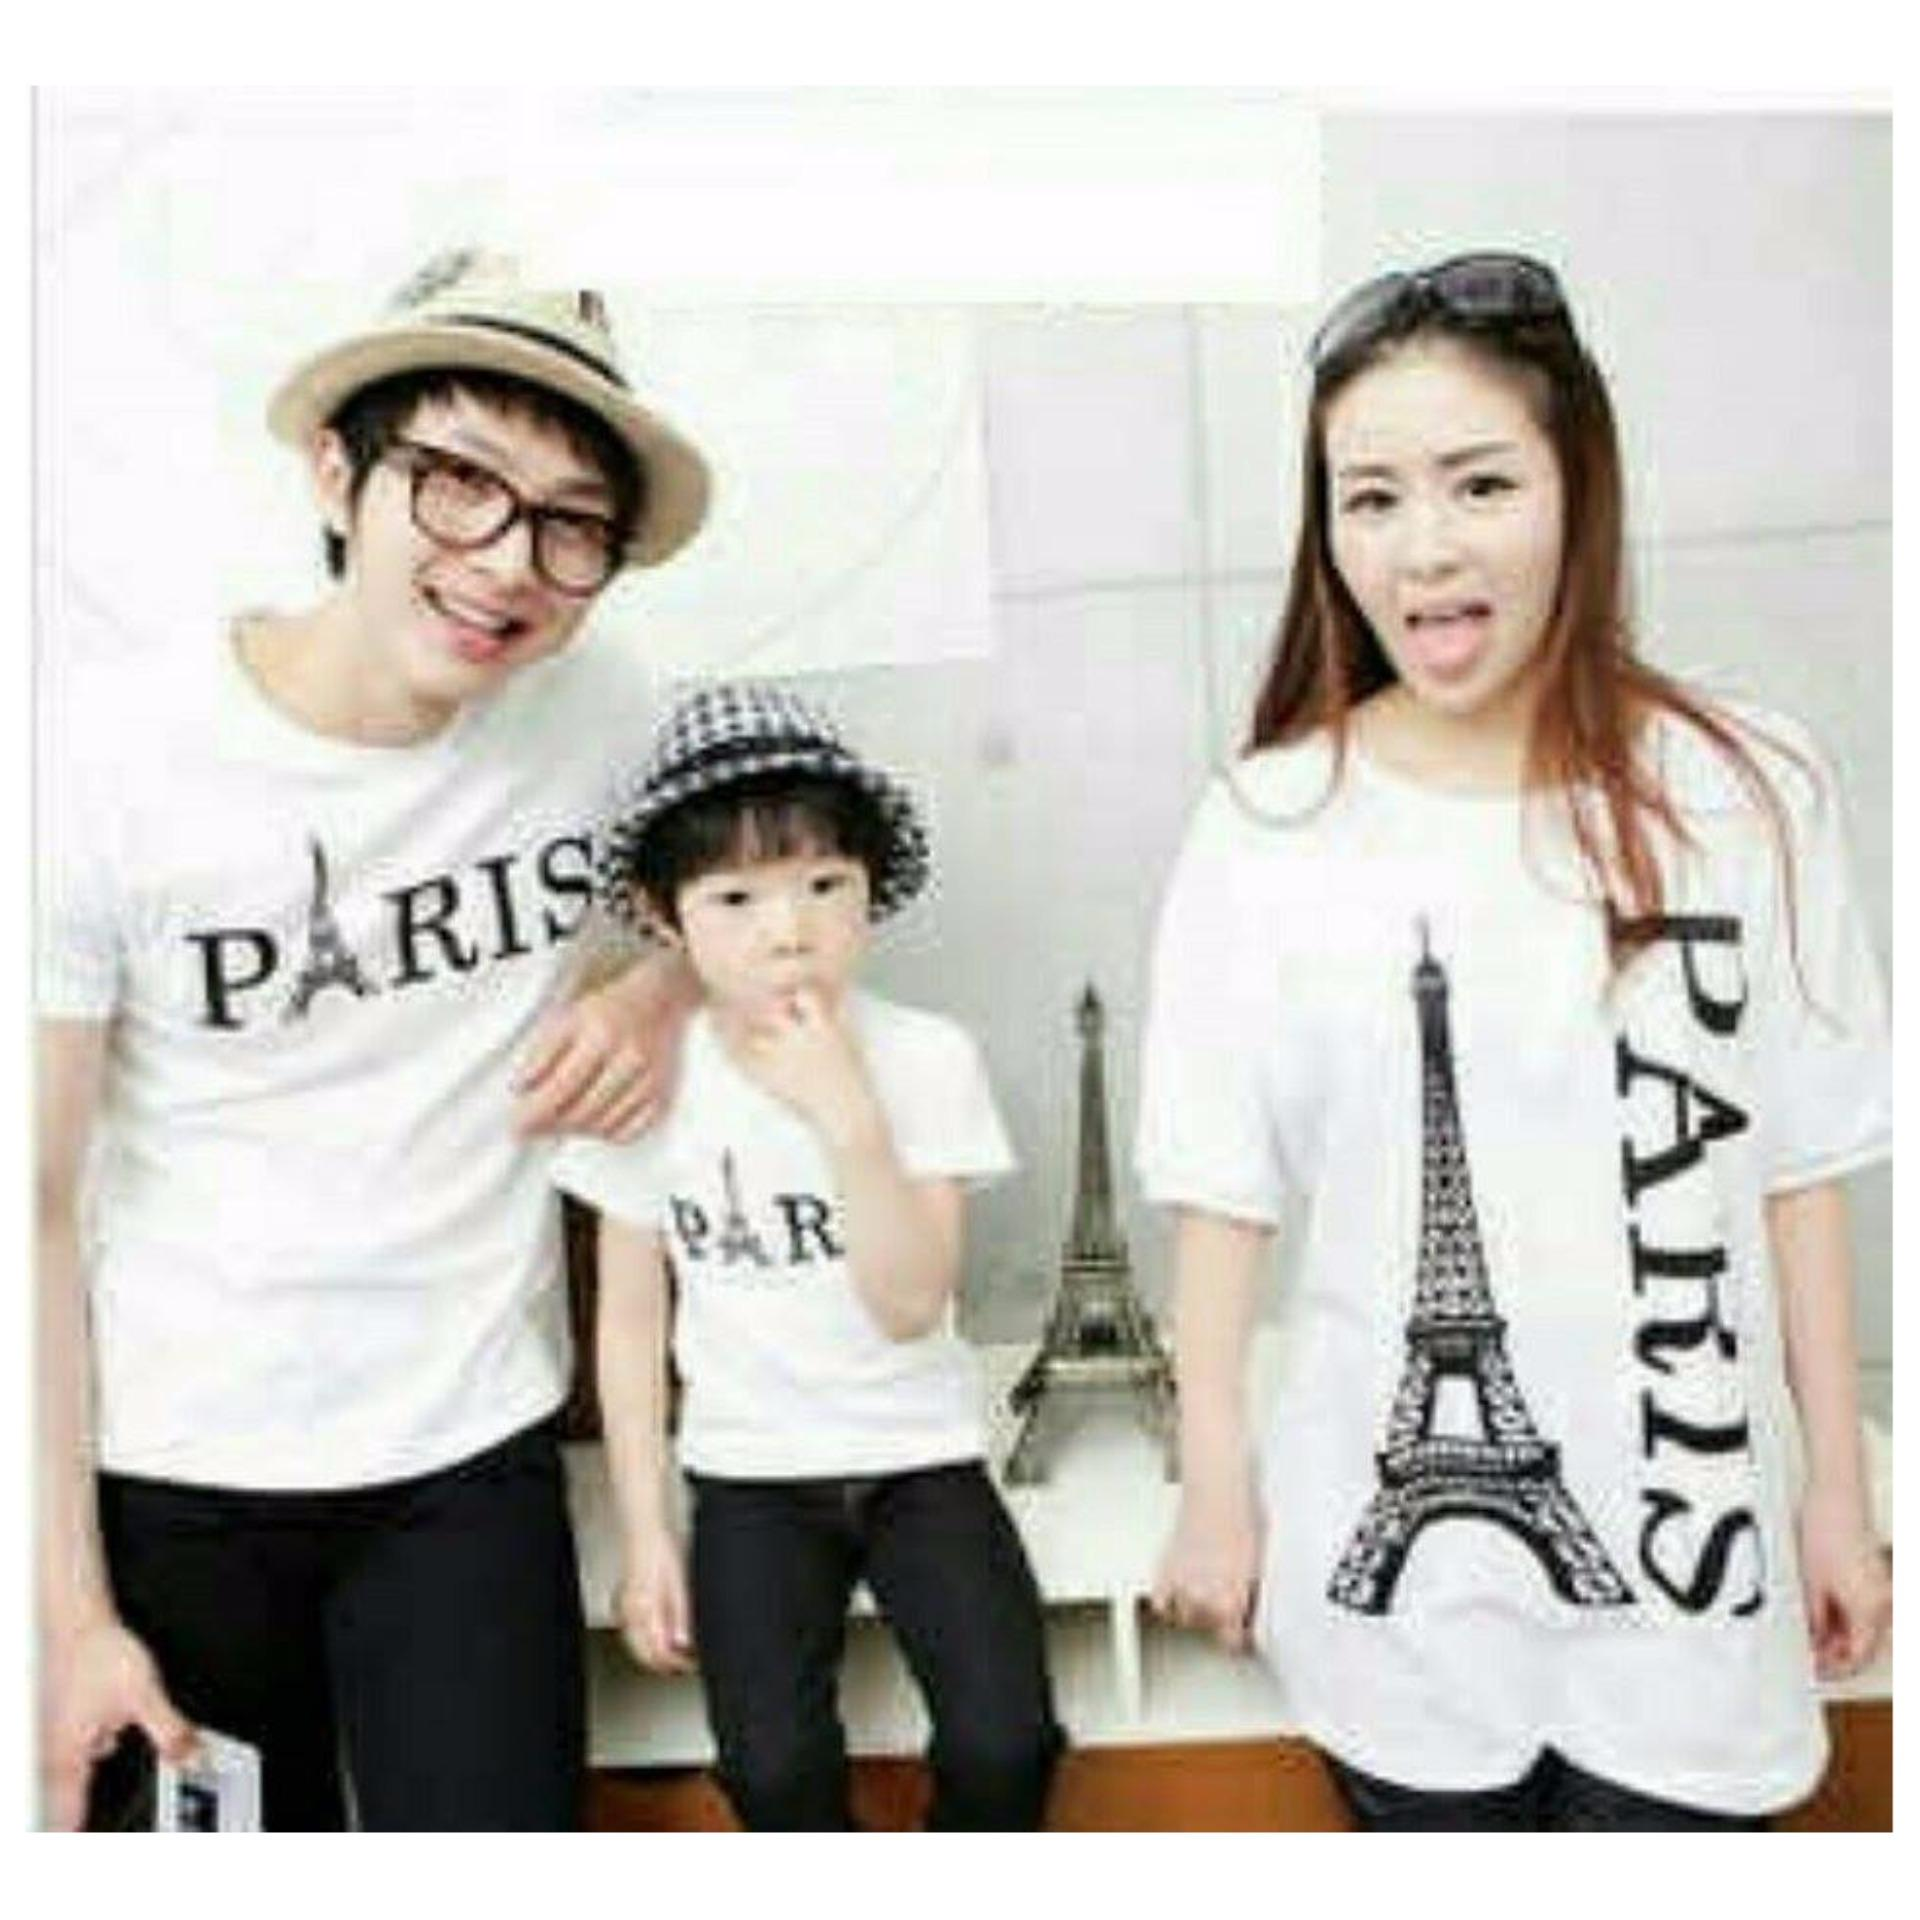 Spesifikasi Couplelover Kaos Couple Family Kalong Paris Putih 1Anak Terbaik